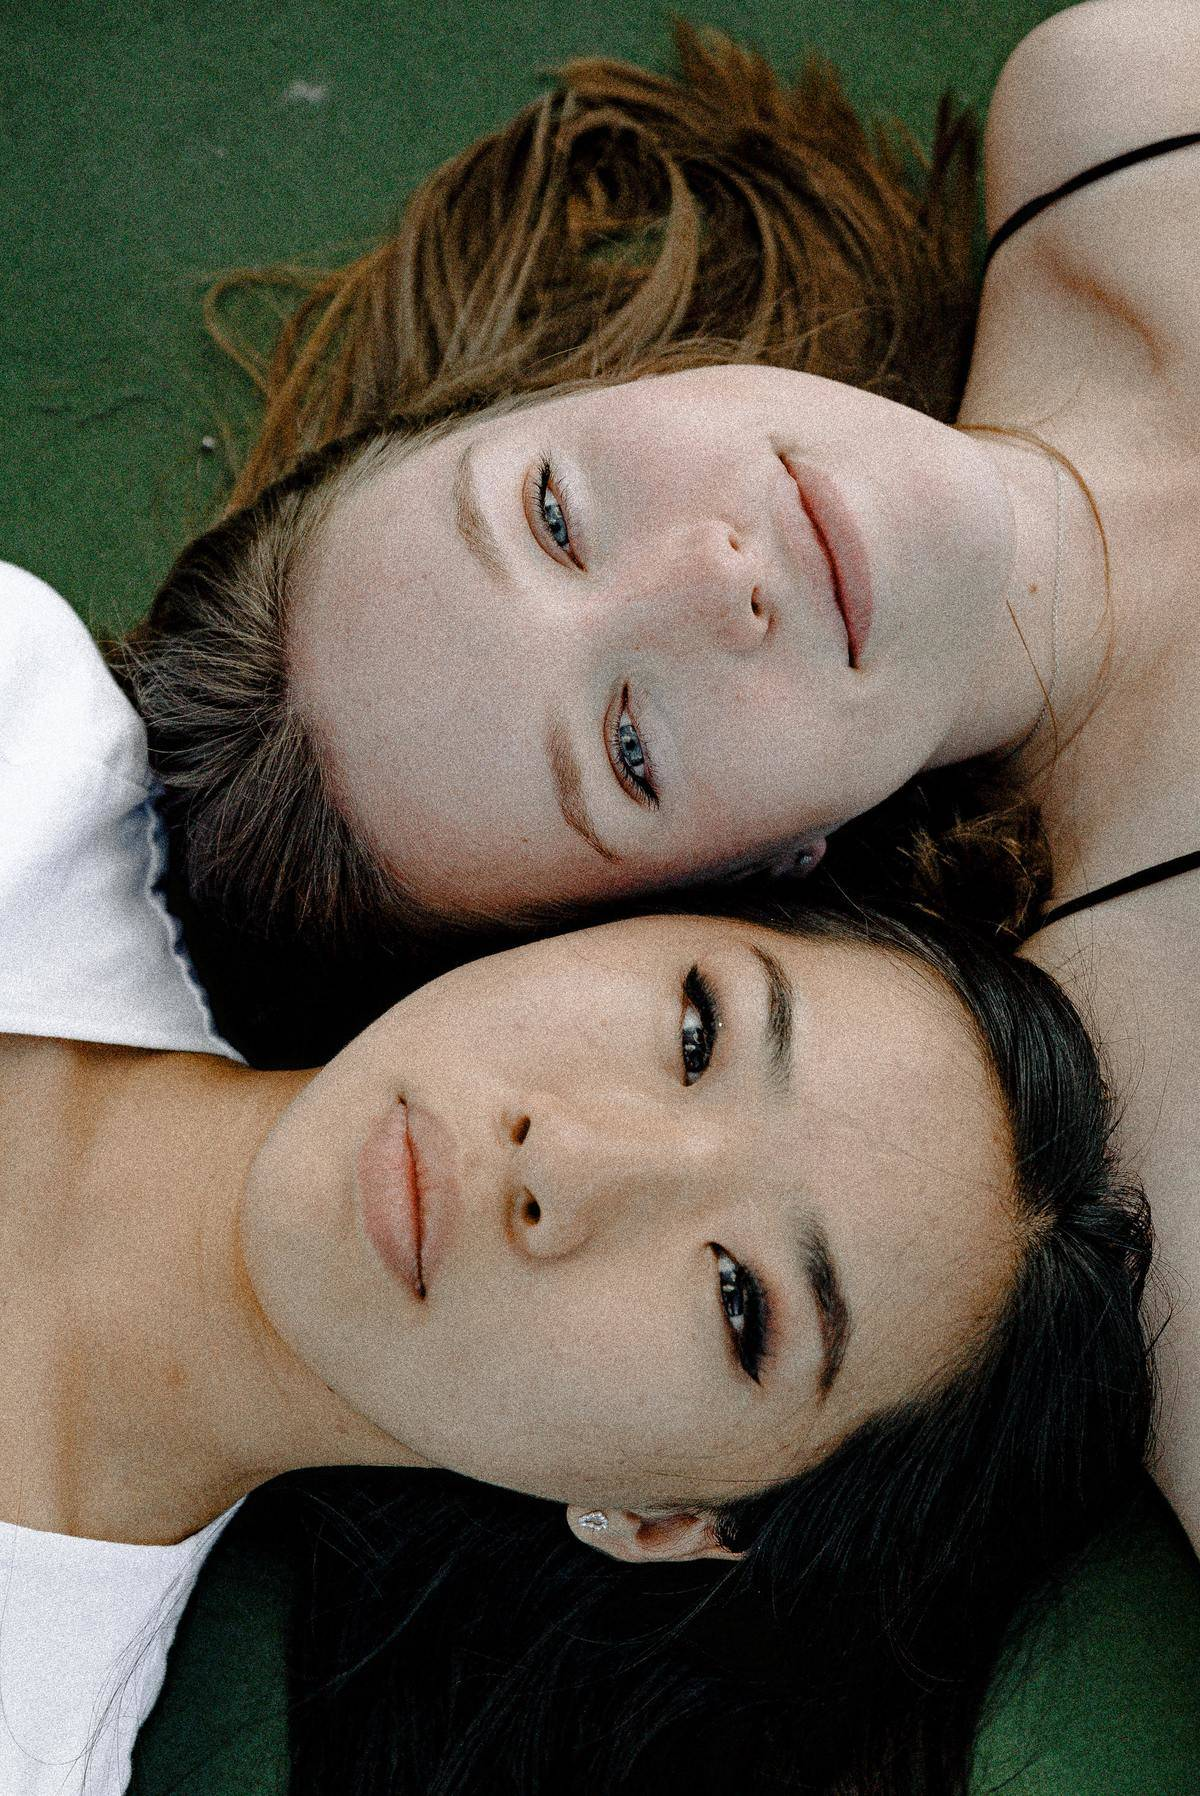 two girls lying down with their heads next to each other, looking up